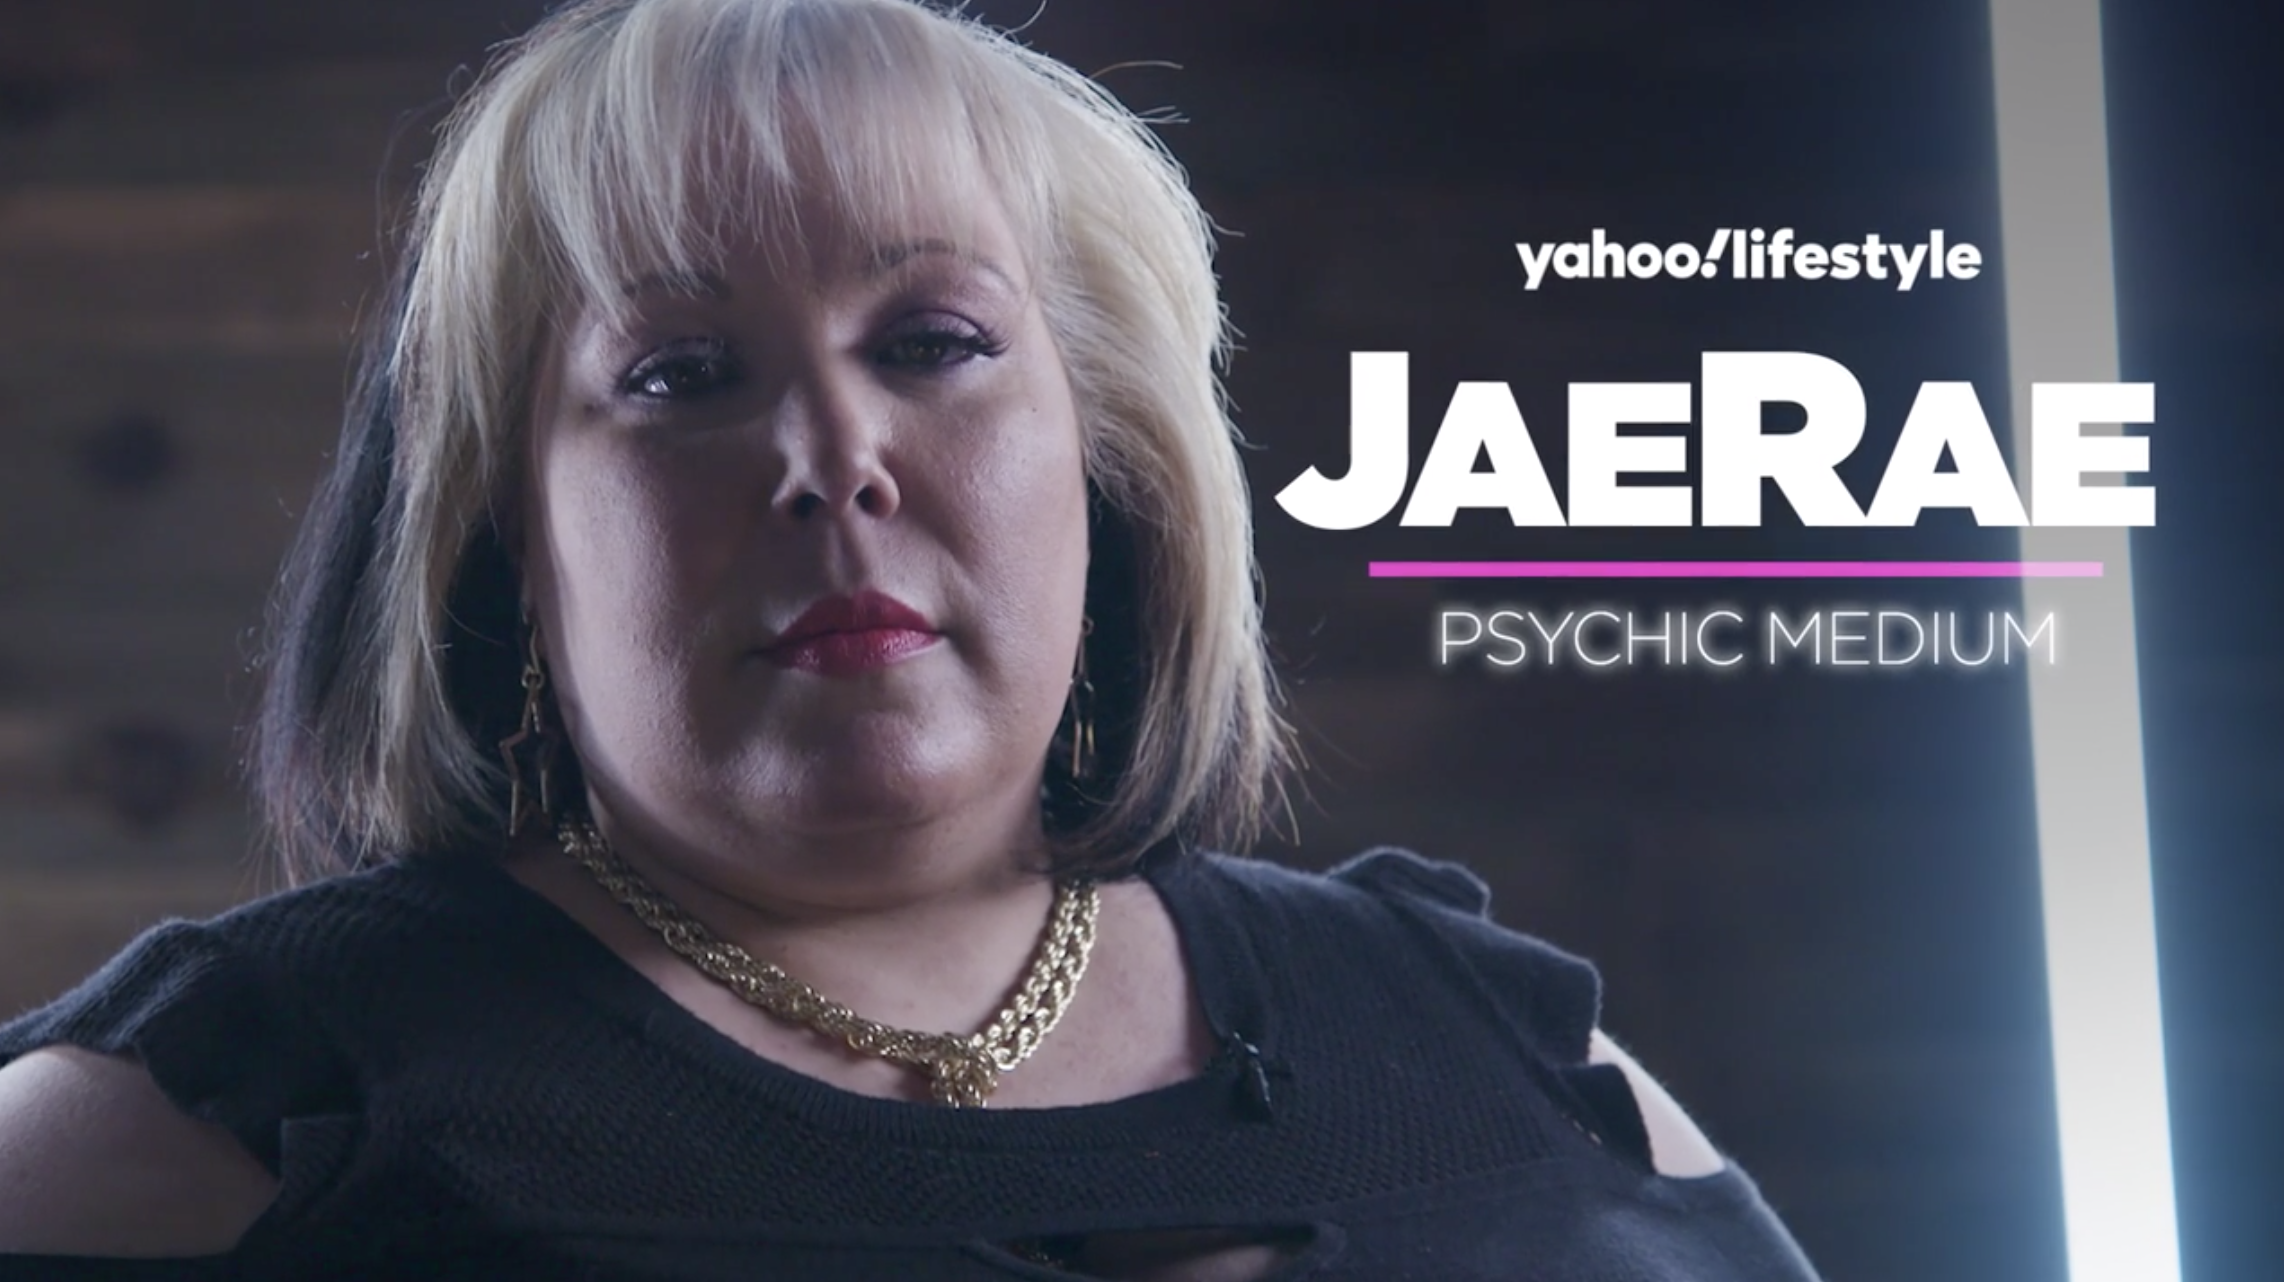 J. Lo's psychic gives readings to Yahoo fans – and her revelations will shock you